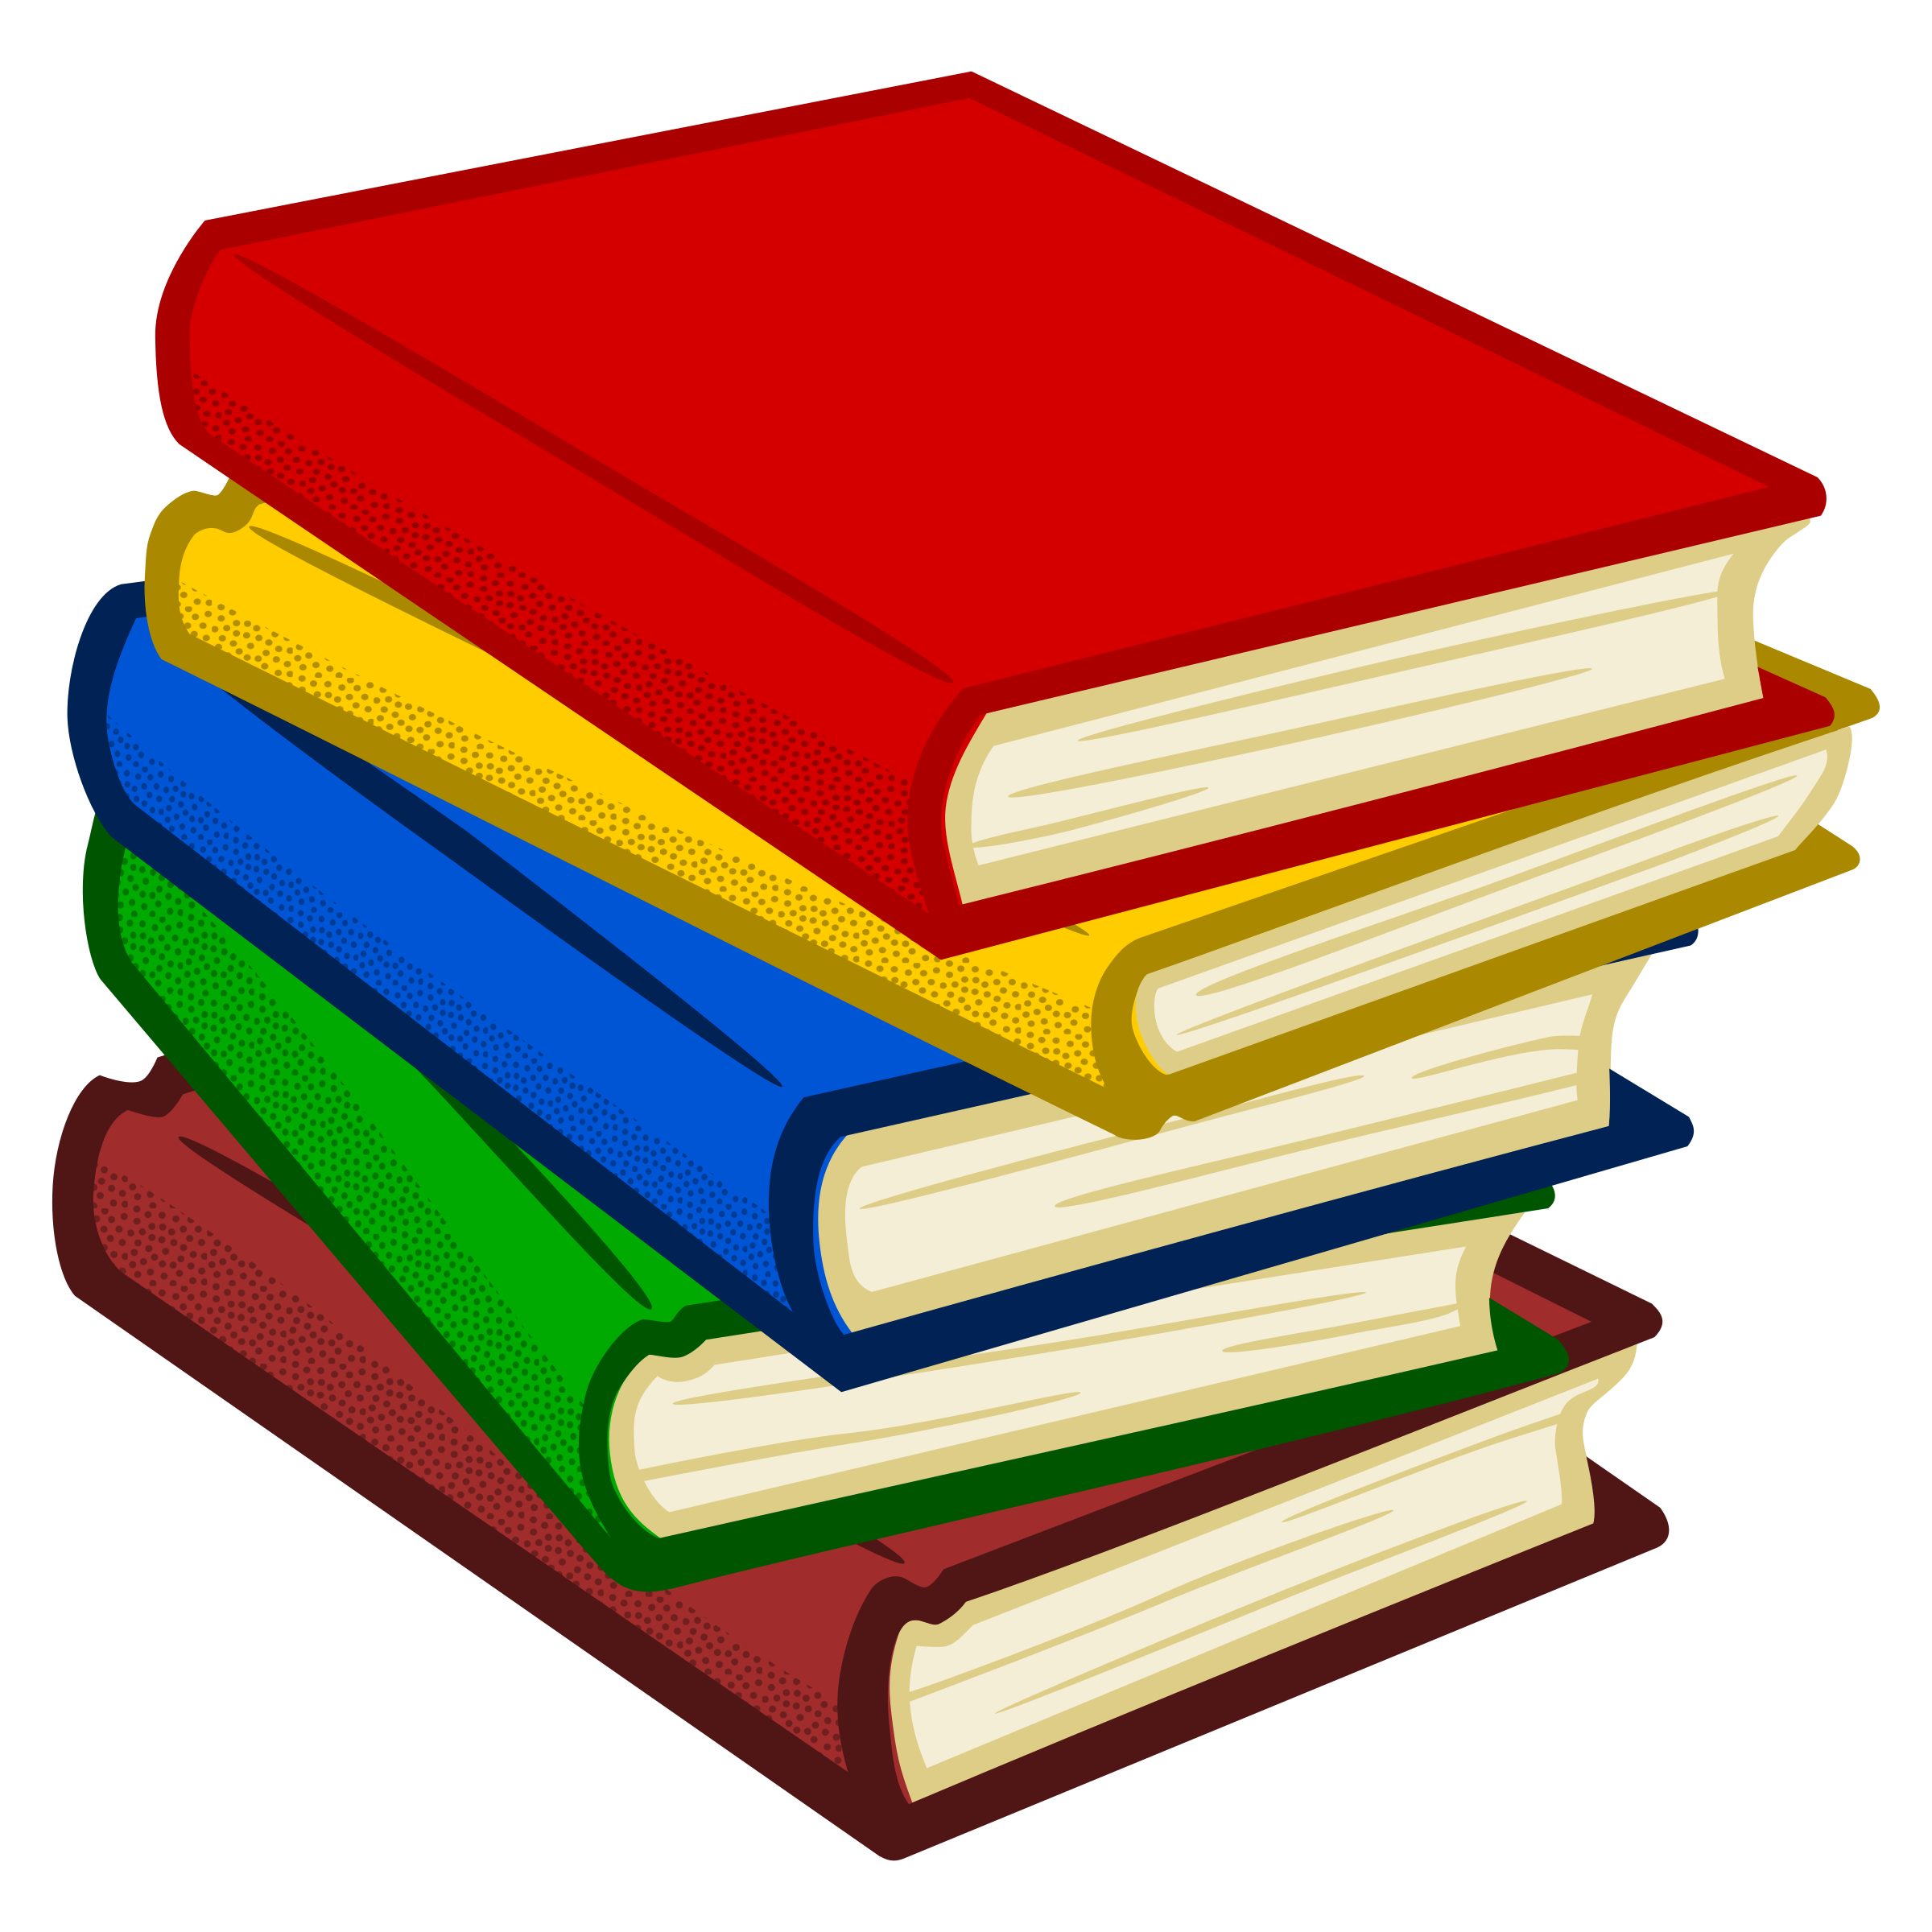 textbook-clipart-colourful-book-6